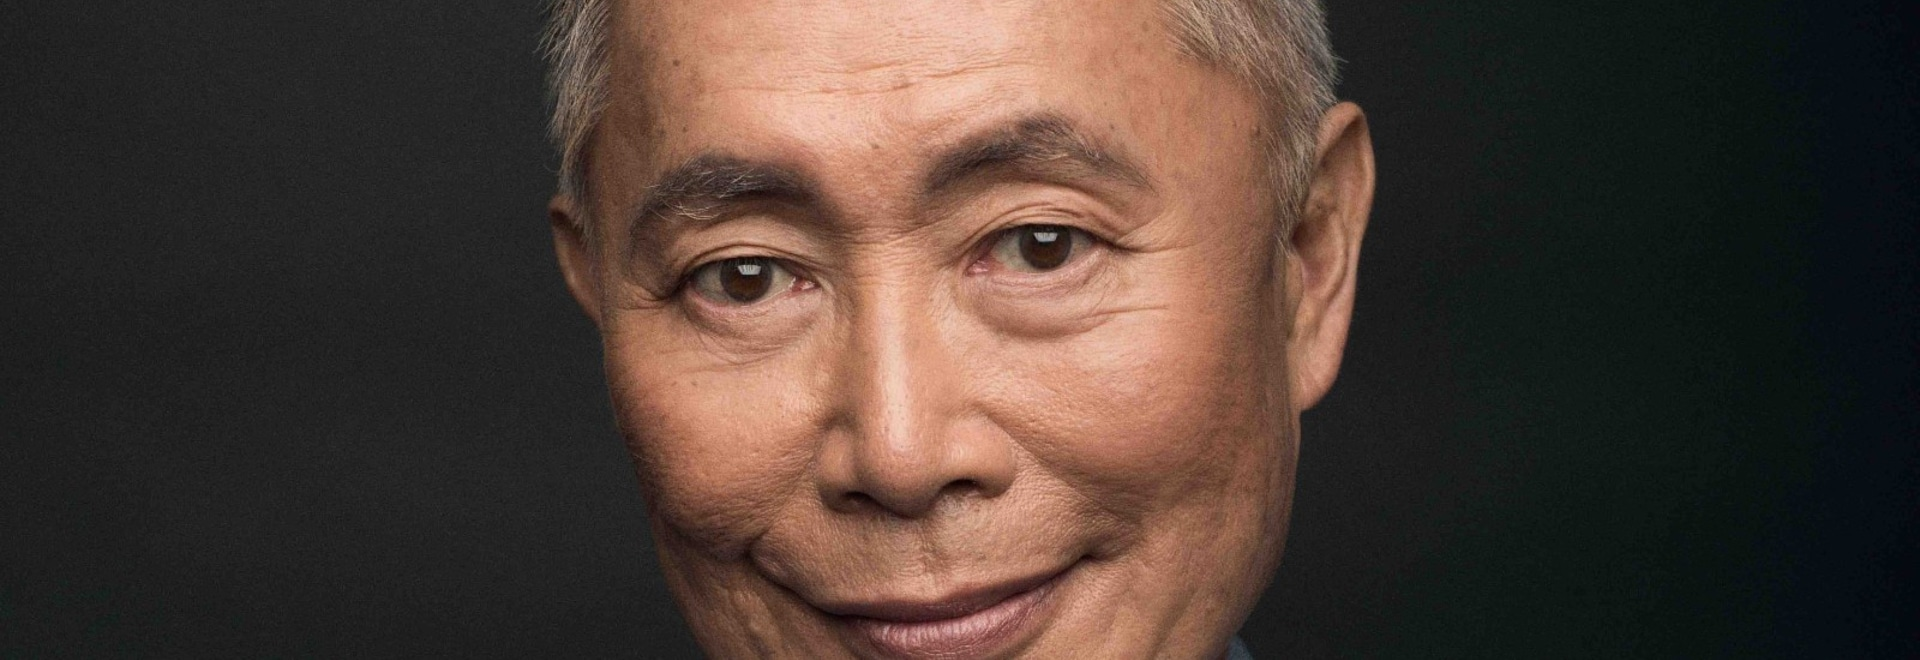 George Takei gets a Space-age physical